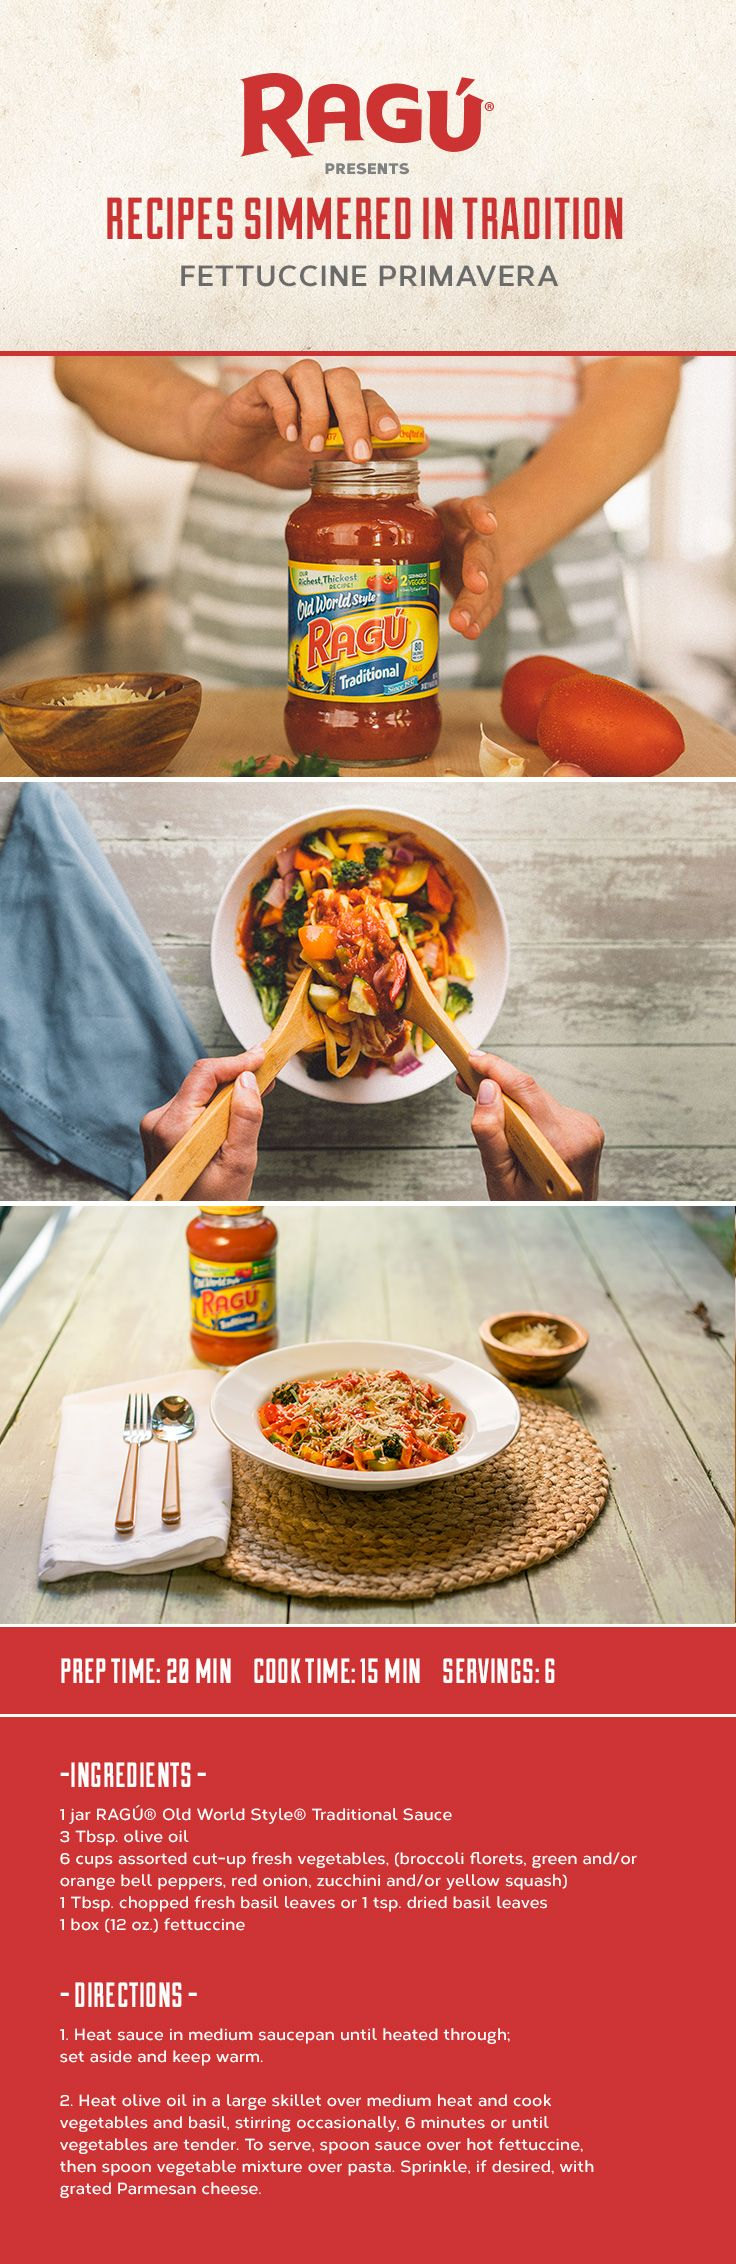 Getting kids to eat their veggies has never been so easy. Every jar of RAGÚ® Old World Style® Traditional Sauce has two full servings of vegetables. Whip up this classic Fettuccine Primavera and watch it disappear from their plates.